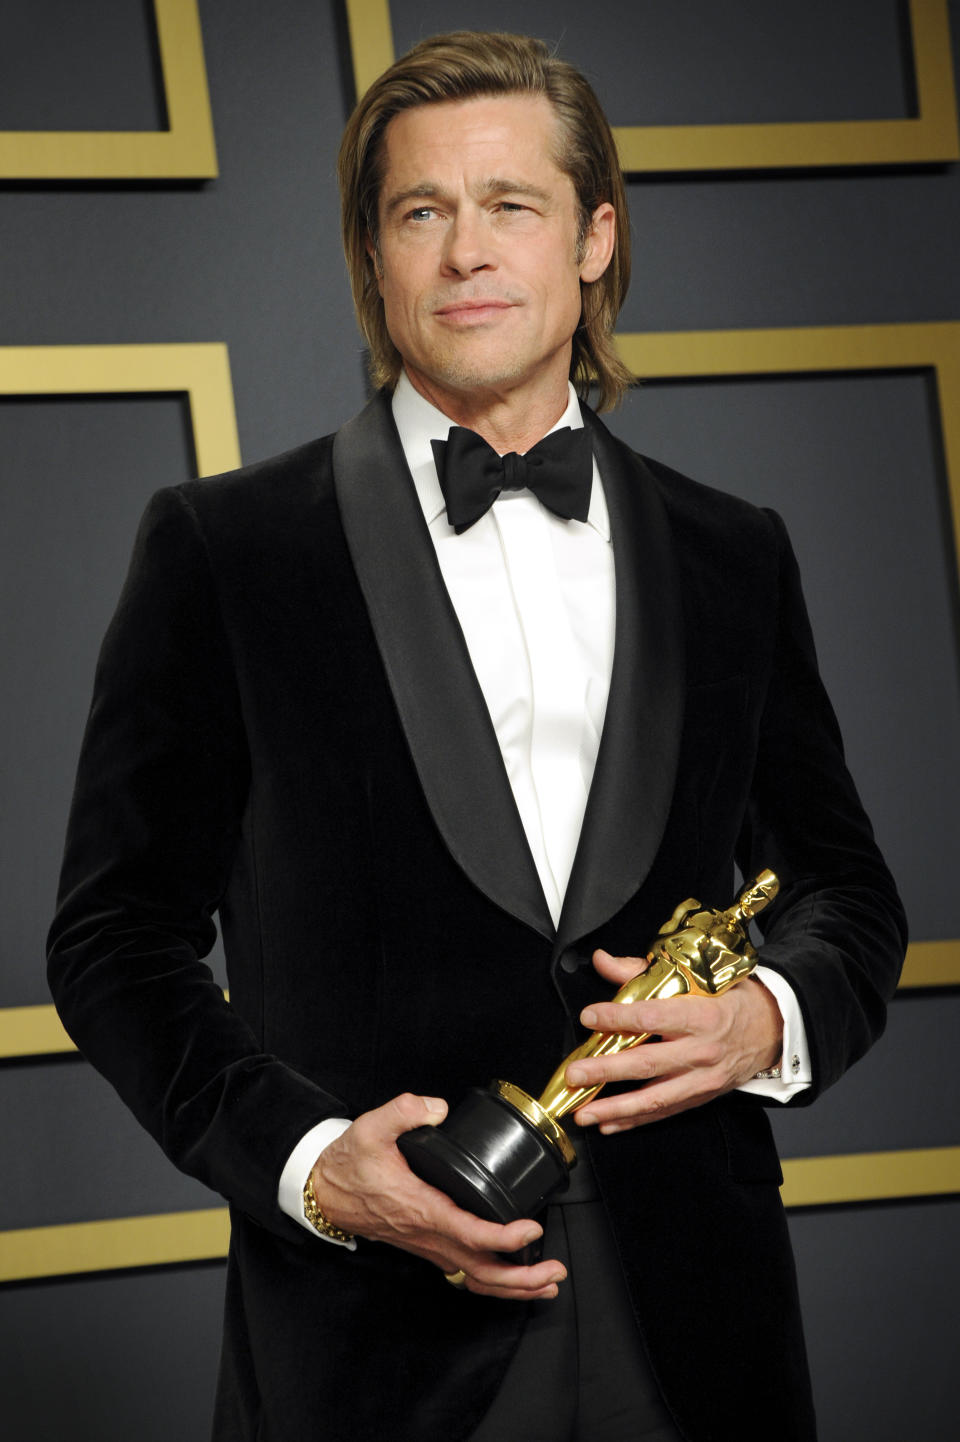 <p>Brad Pitt, who won last year for his role in <em>Once Upon A Time In Hollywood</em>. (Kurt Krieger/Corbis via Getty Images)</p>